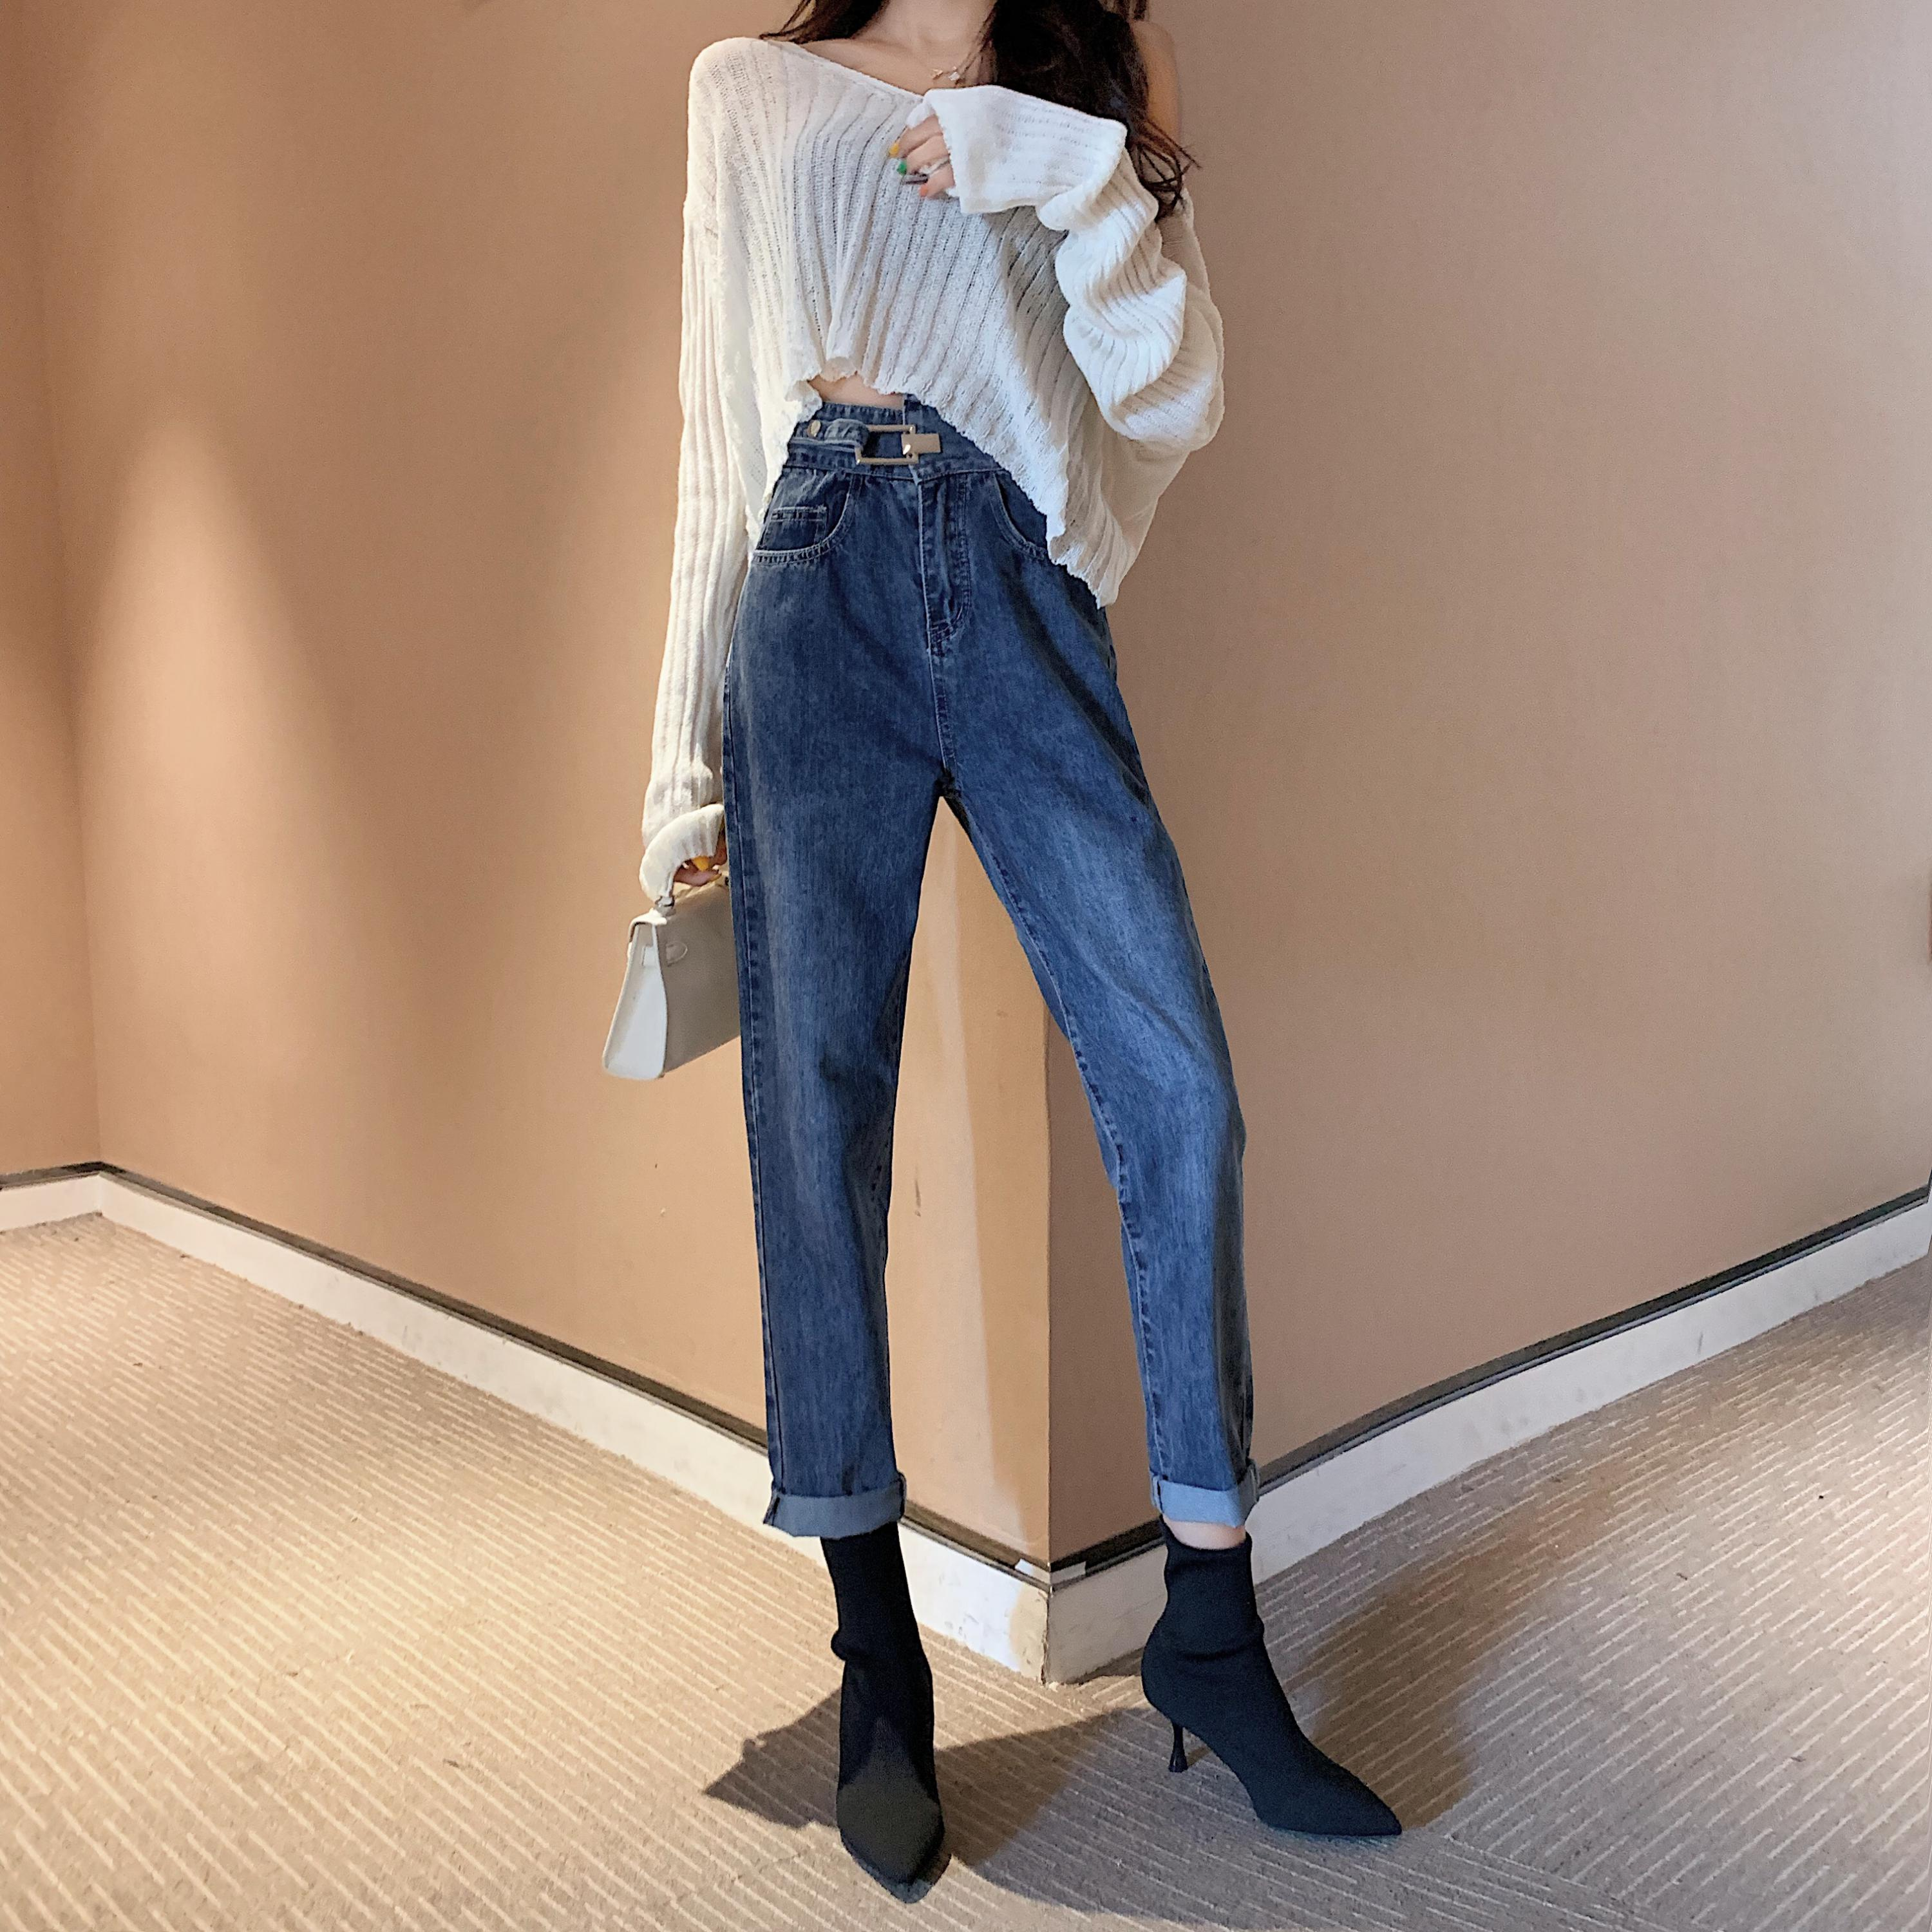 High Waist Jeans Mujer 2019 Winter Casual Loose Chic Vintage Denim Jeans Ladies Blackgray Pocket Washed Korean Women Jeans